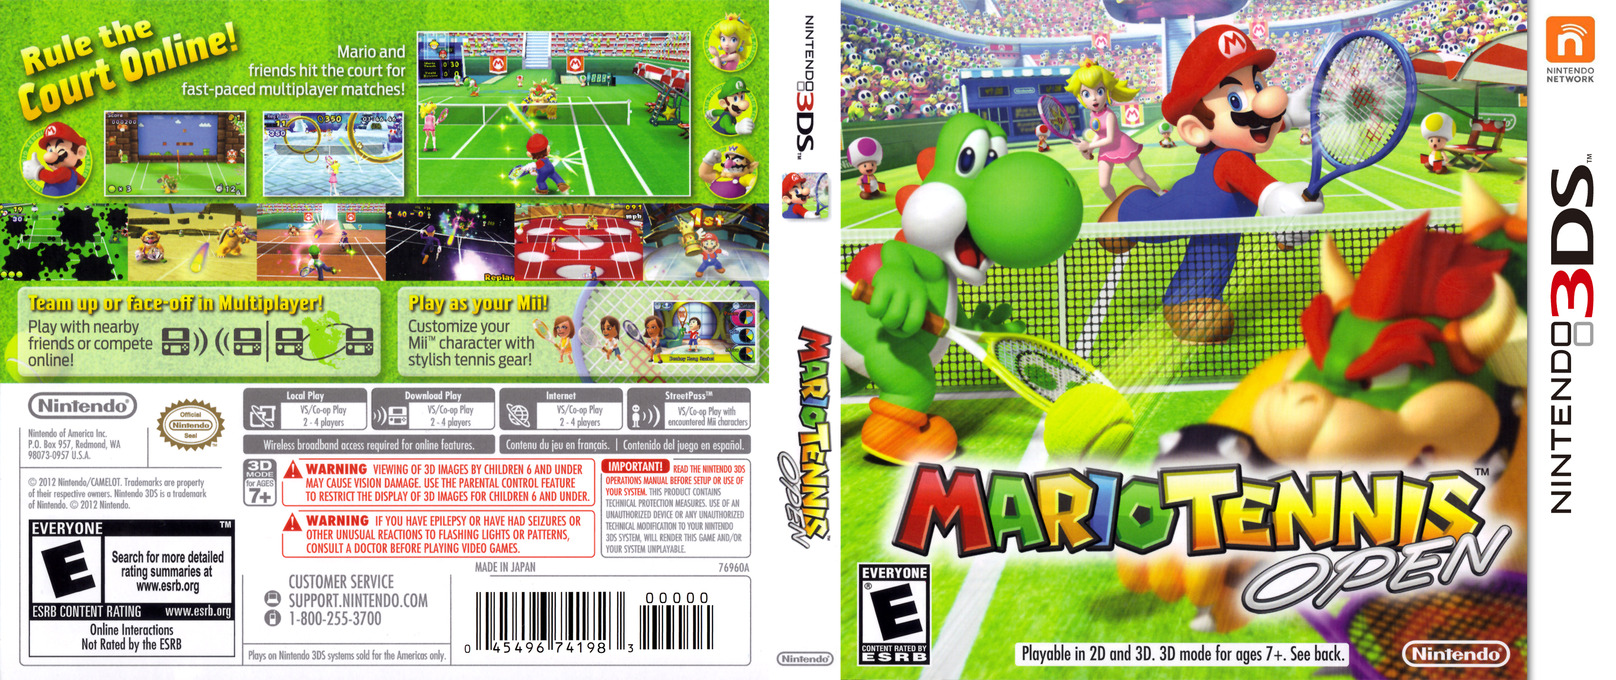 Mario Tennis Open 3DS coverfullHQ (AGAE)